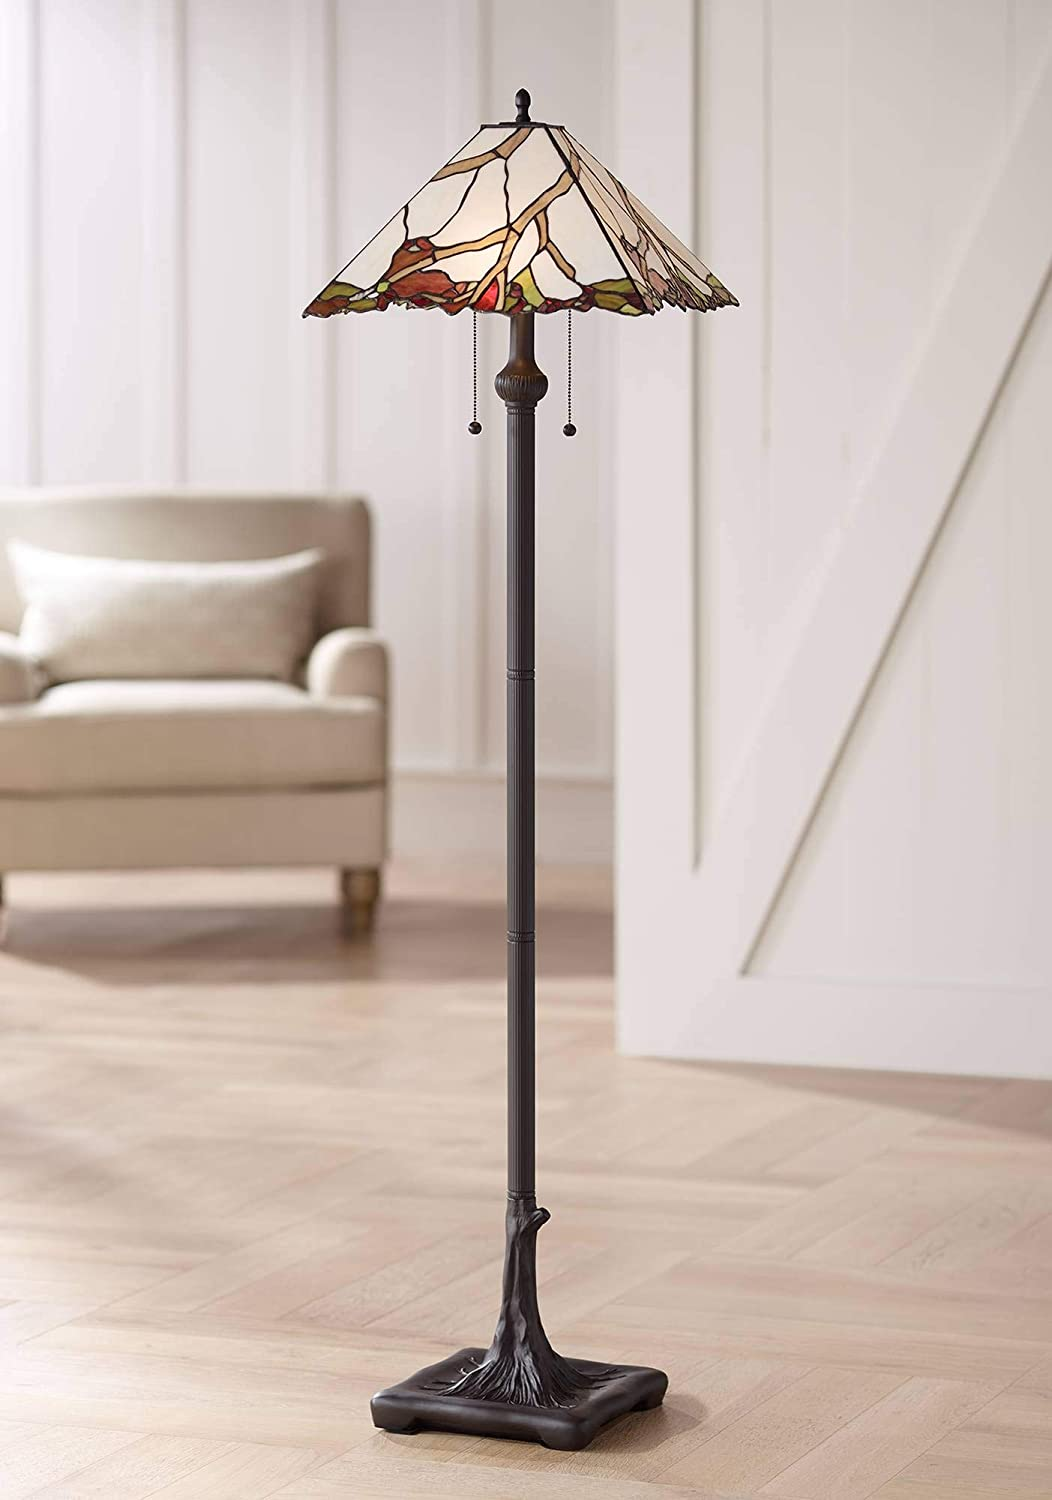 Country Cottage Floor Lamp Bronze Tree Root Cherry Blossom Pattern Stained Glass for Living Room Reading – Robert Louis Tiffany